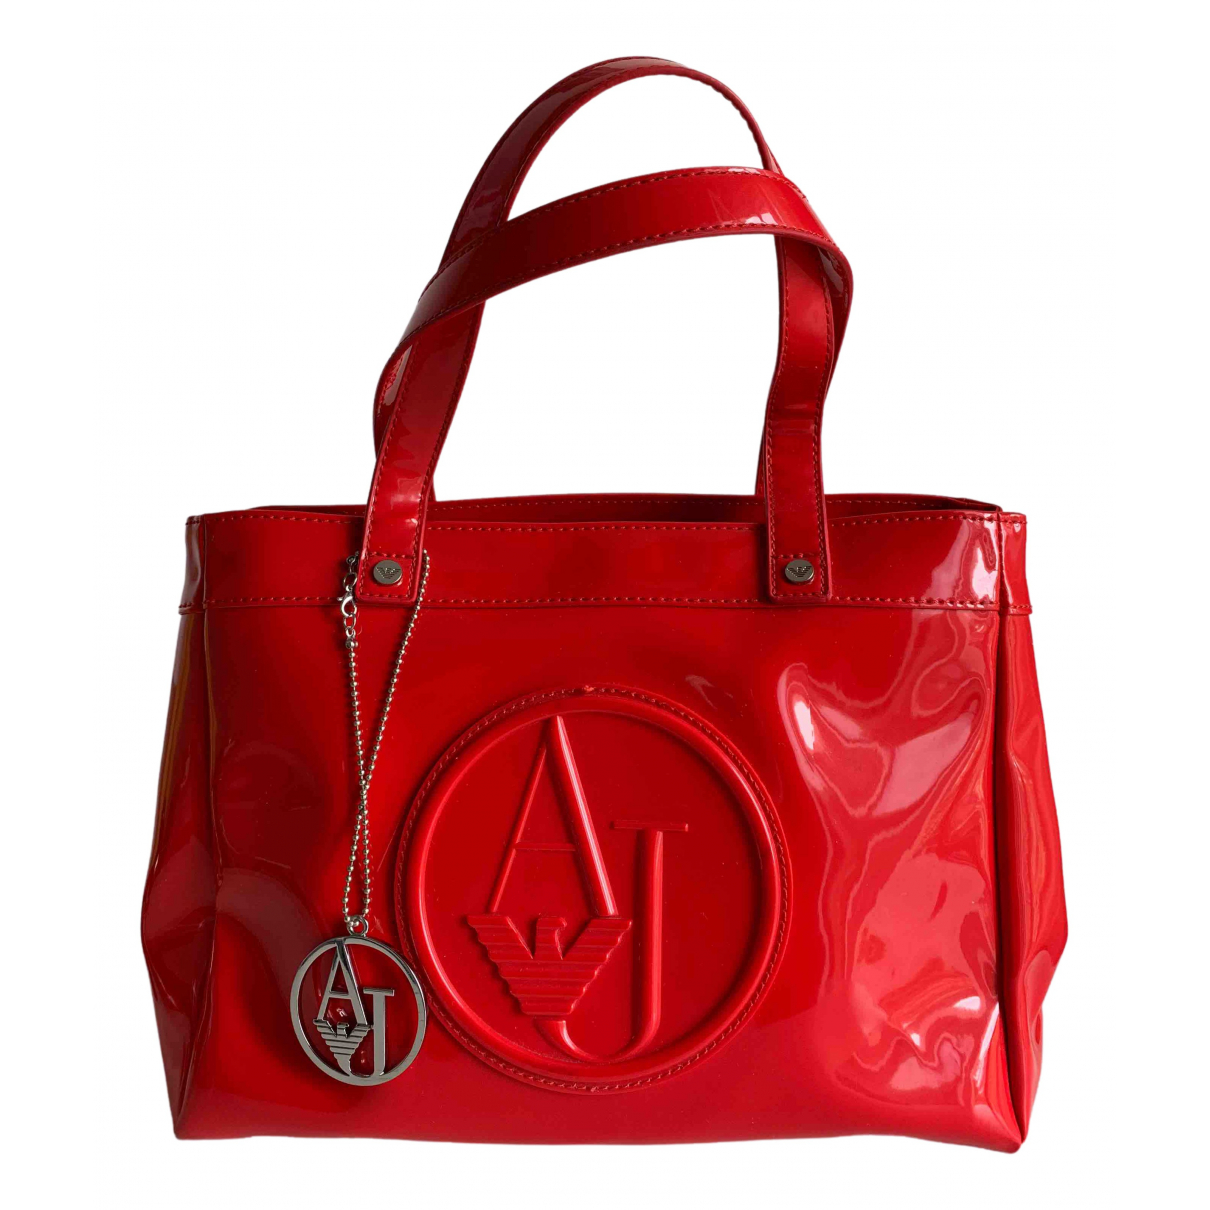 Armani Jeans \N Red Patent leather handbag for Women \N